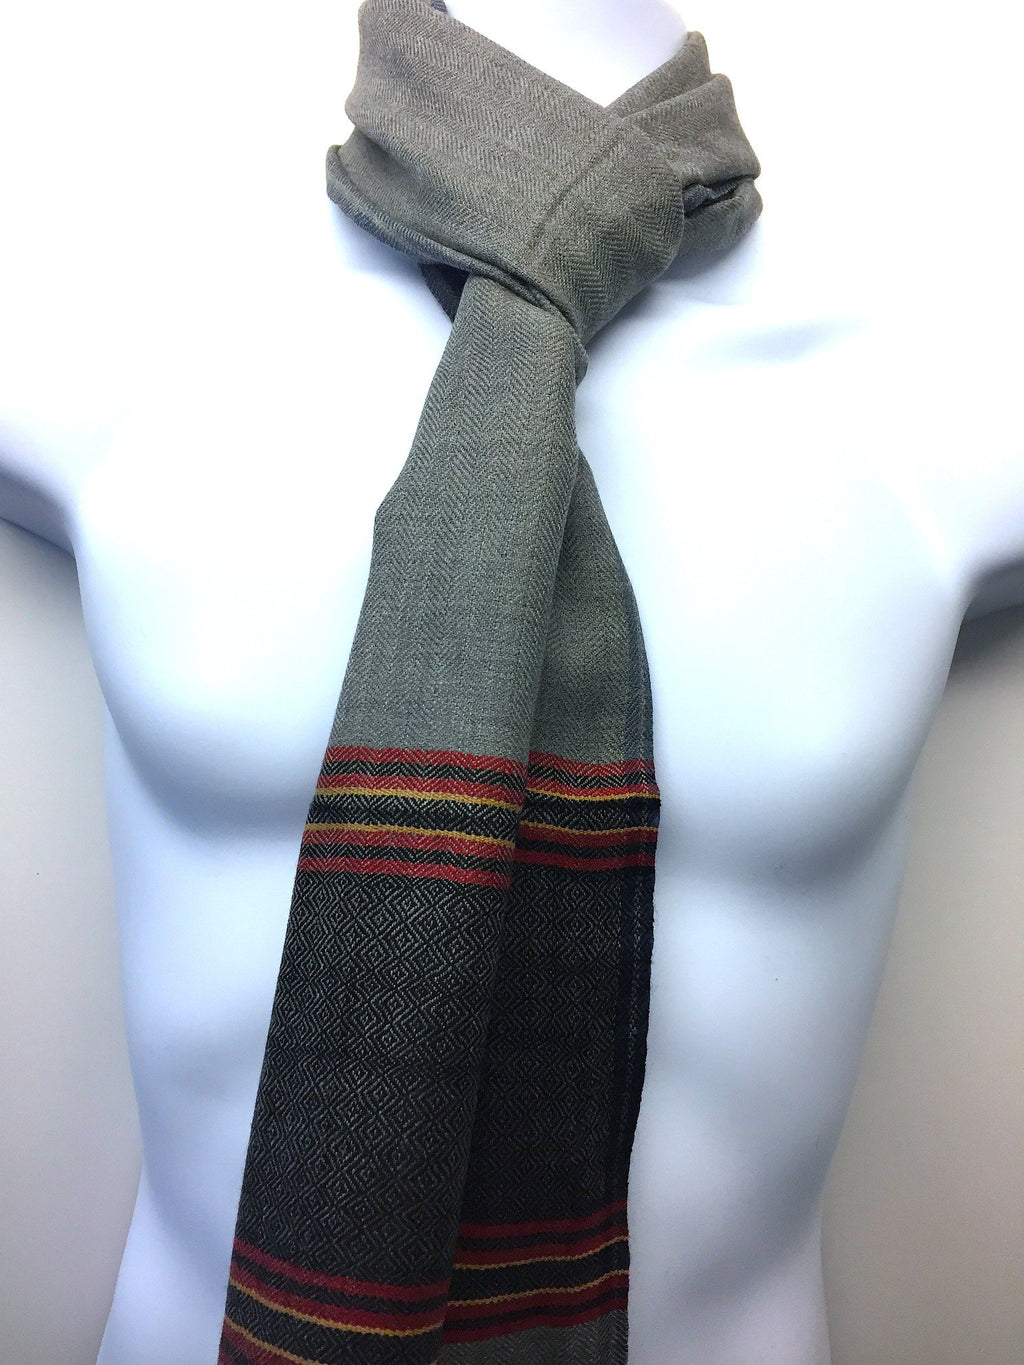 Pure 100% Wool, Steel Grey Men's Scarf With Pattern At The End.